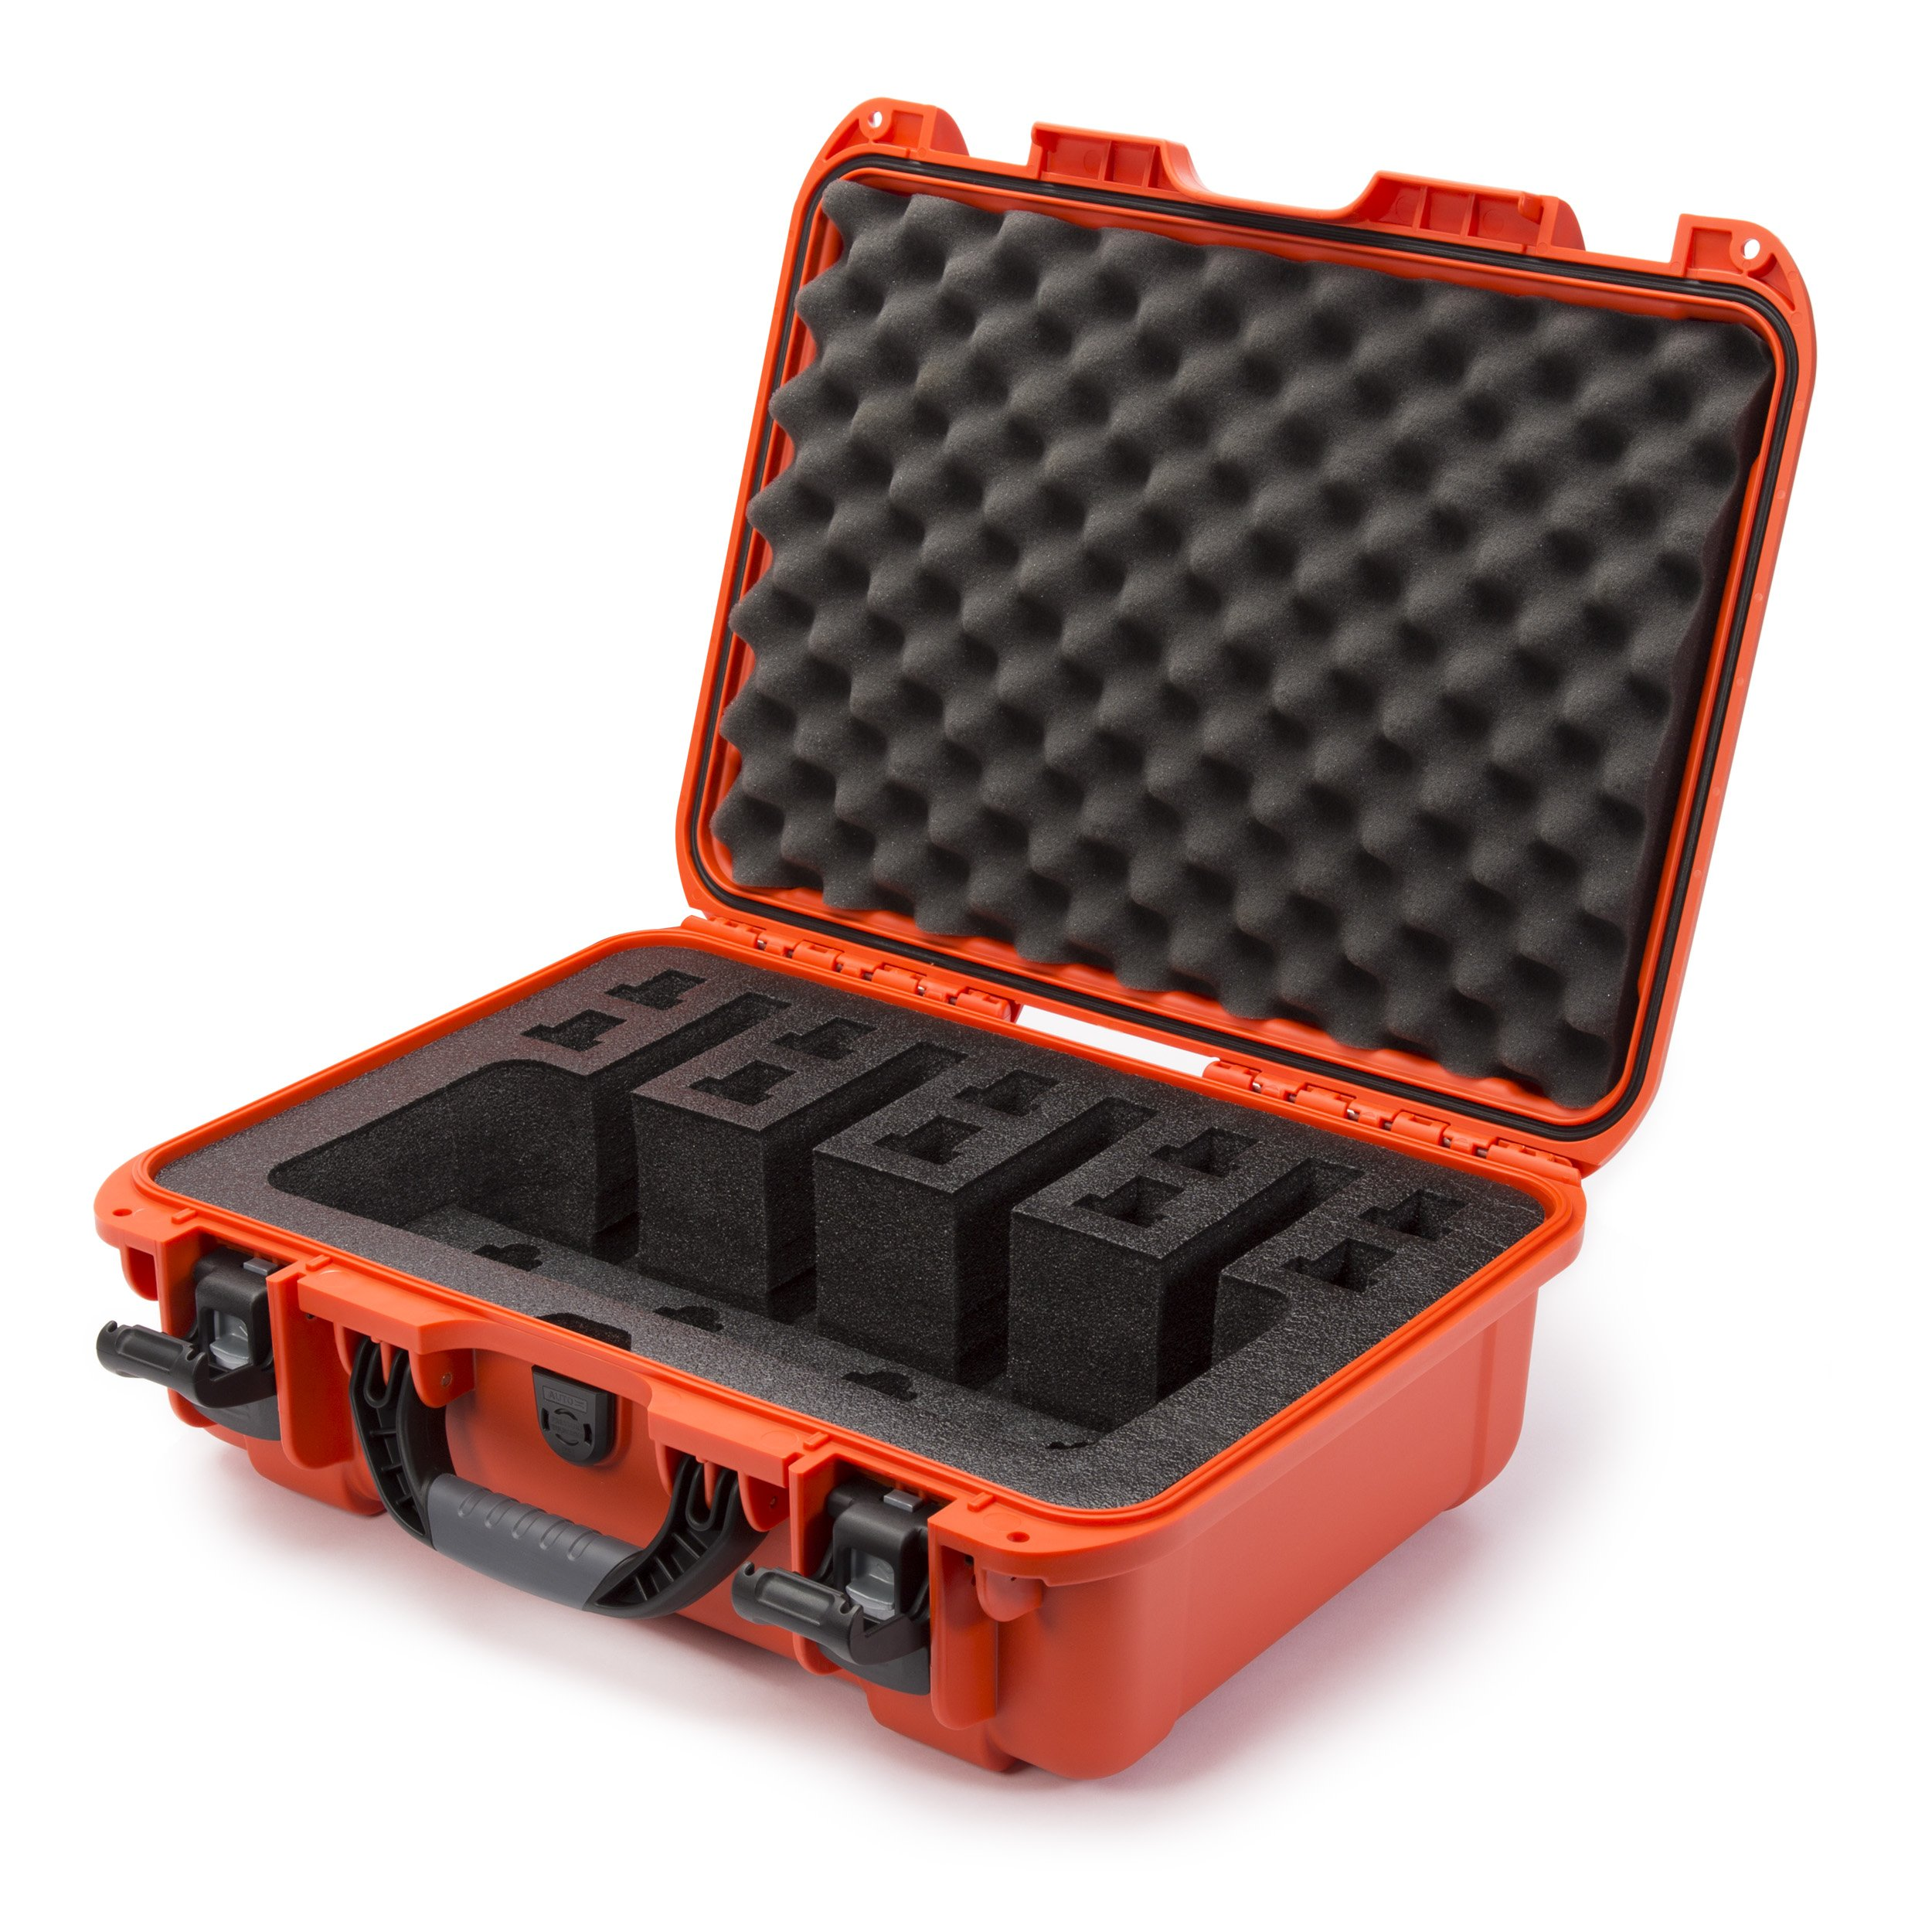 Nanuk 925 Waterproof Professional Gun Case, Military Approved with Custom Foam Insert for 4UP - Orange by Nanuk